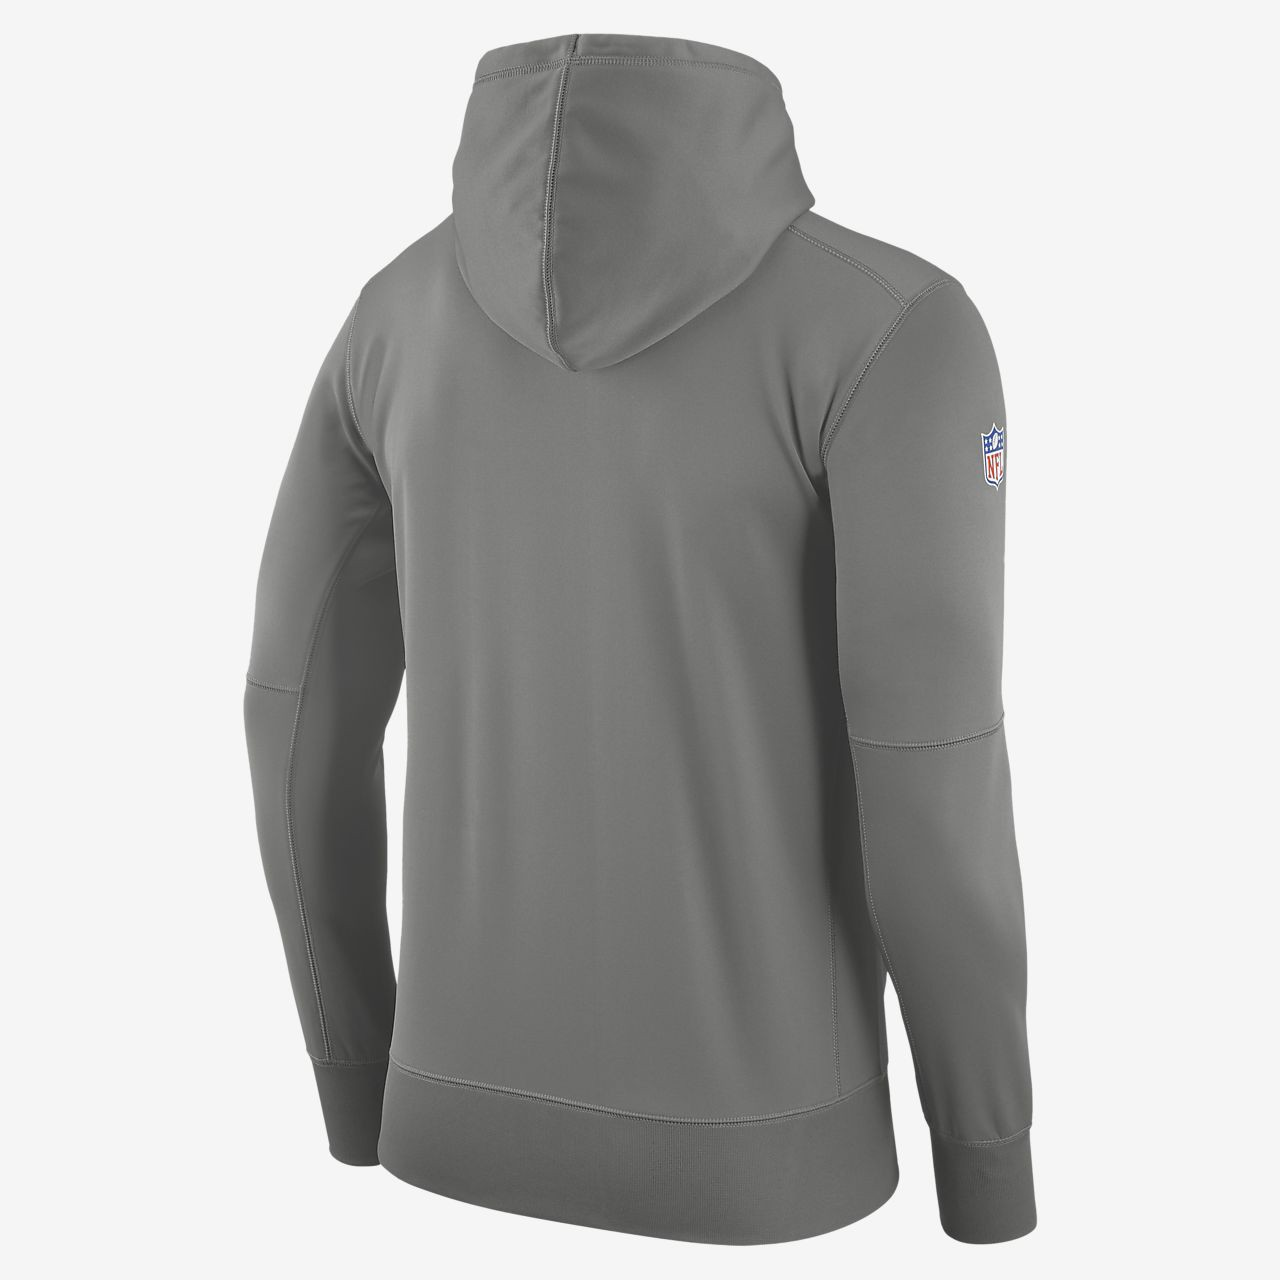 Nike Dri-Fit Therma (Nfl Lions) Men s Pullover Hoodie - 2XL ... bc788a66b